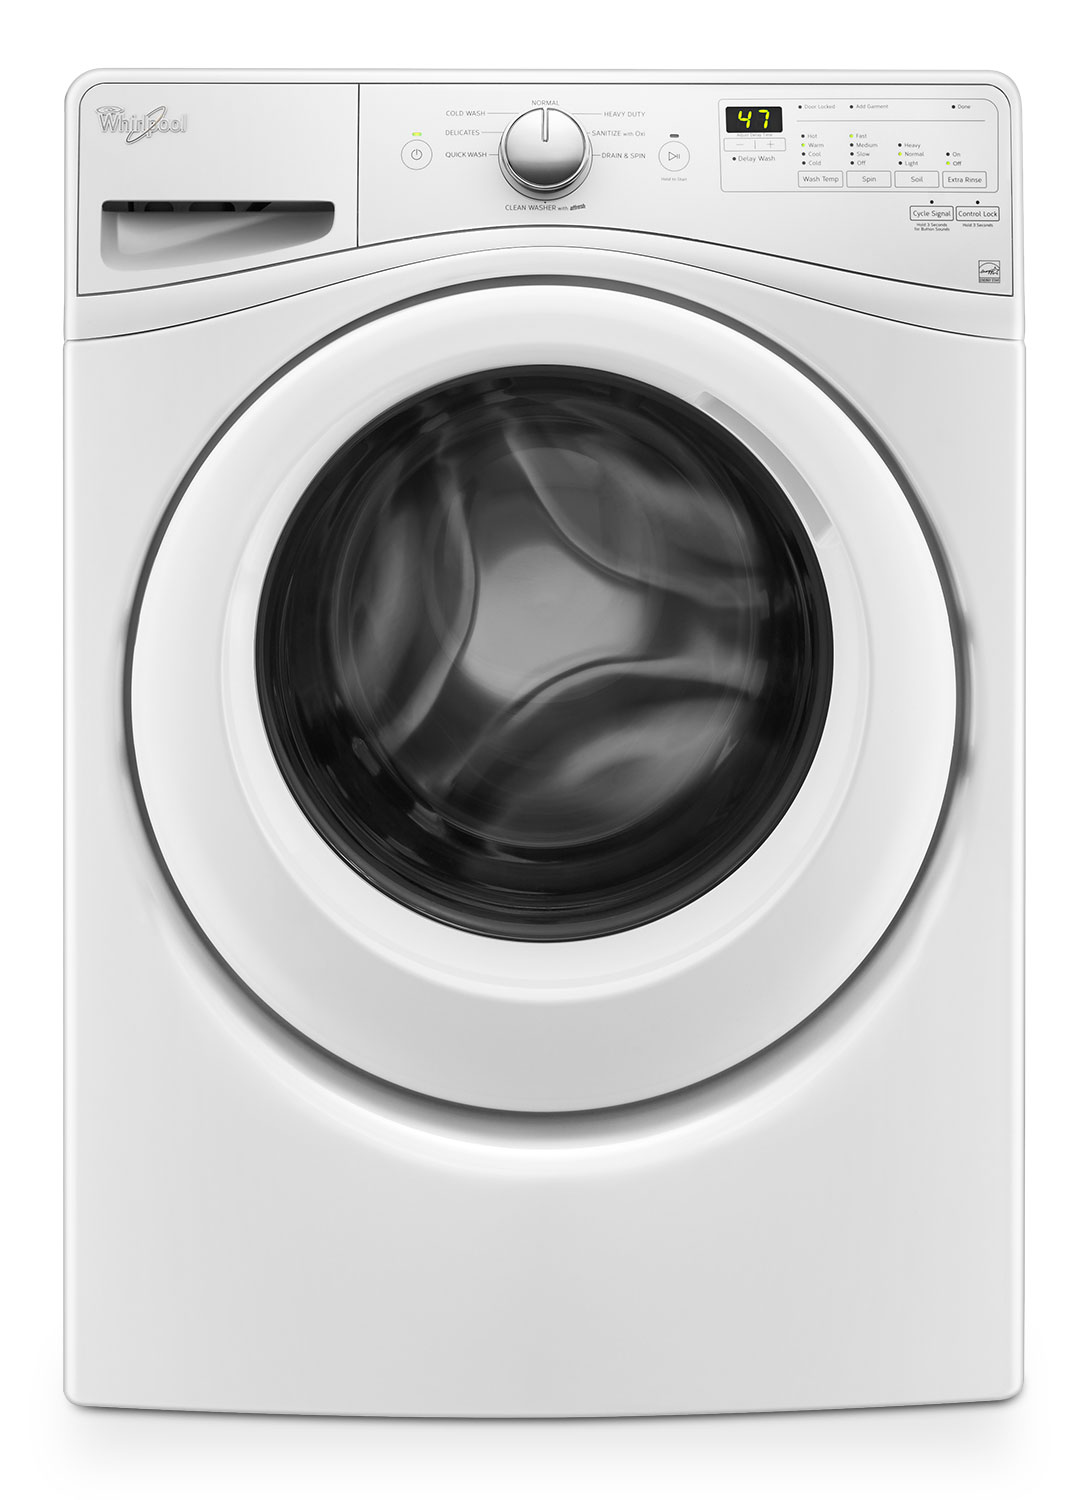 Whirlpool White Front-Load Washer (5.2 Cu. Ft.) - WFW75HEFW